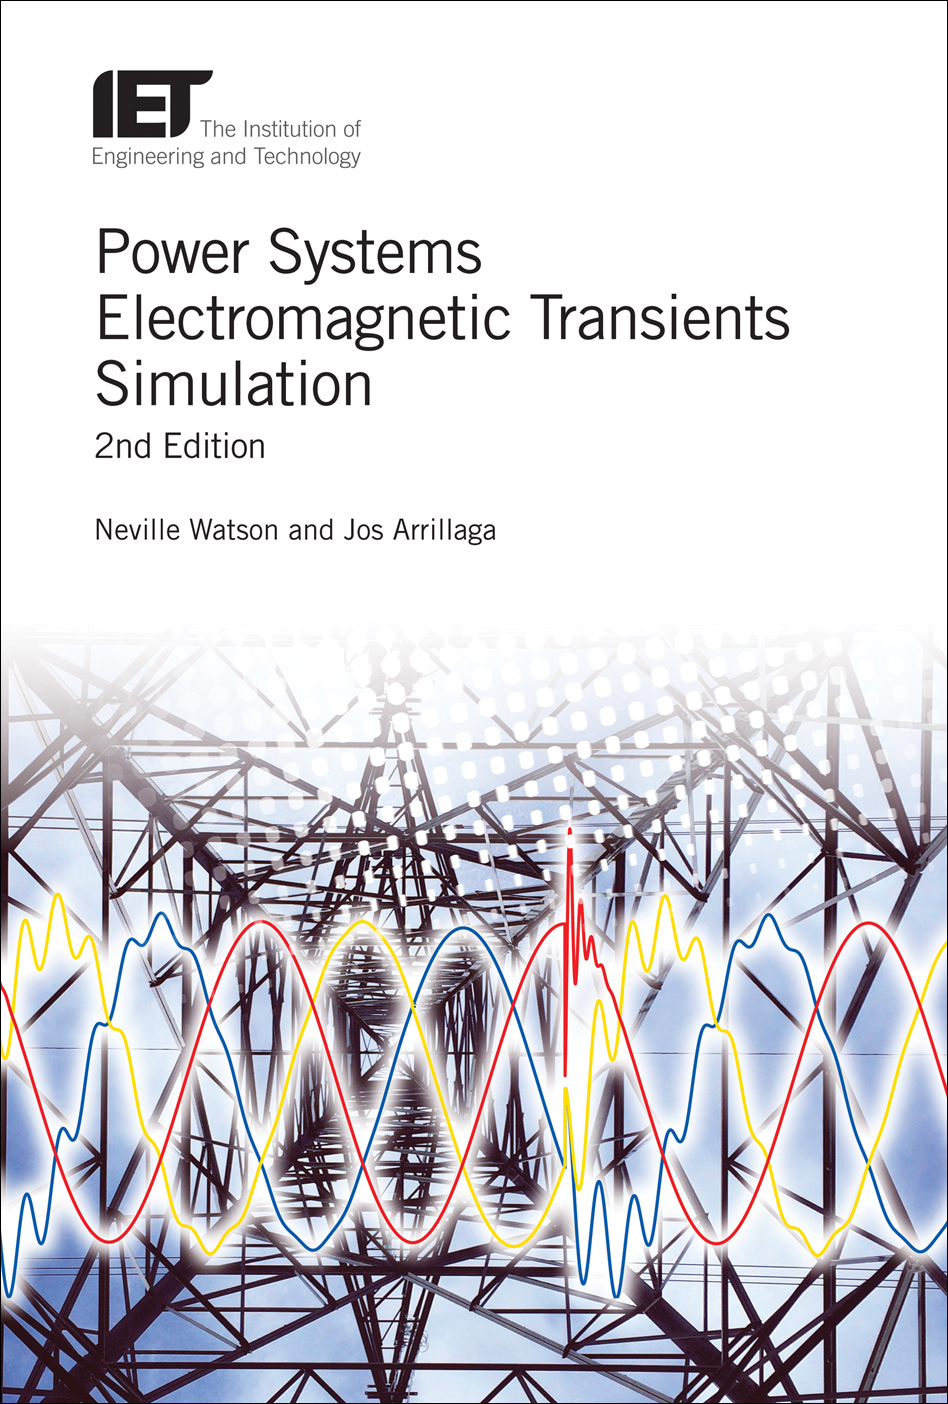 Power Systems Electromagnetic Transients Simulation, 2nd Edition